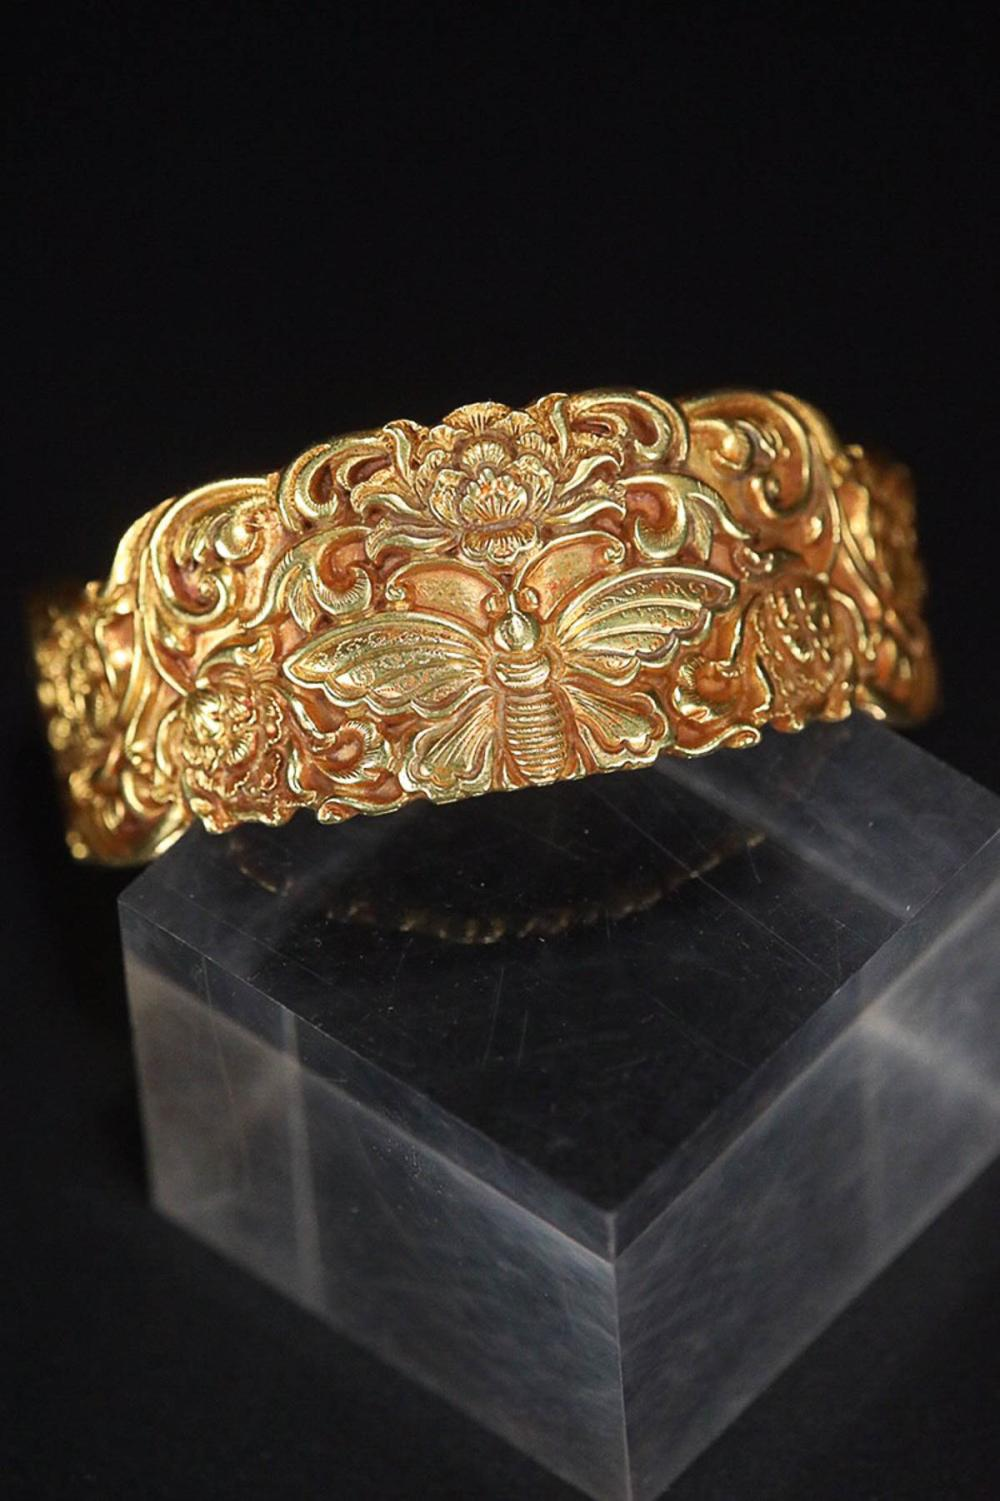 A BEUTTERFLY&FLORAL PATTERN GILT SILVER BANGLE